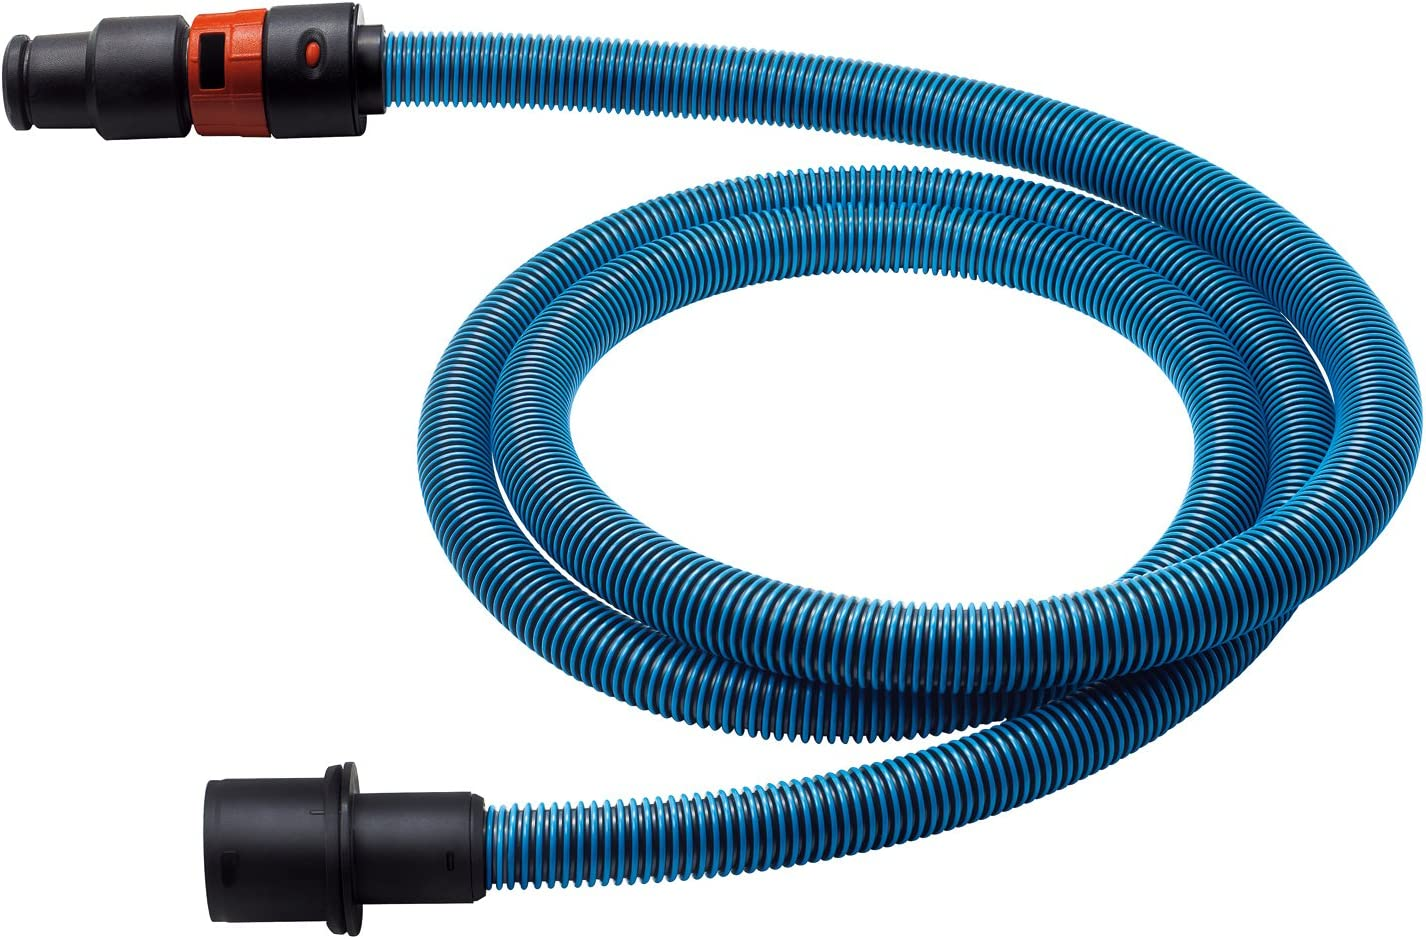 Bosch VH1622A 16-Feet Anti-Static 22mm Dust Extractor Hose